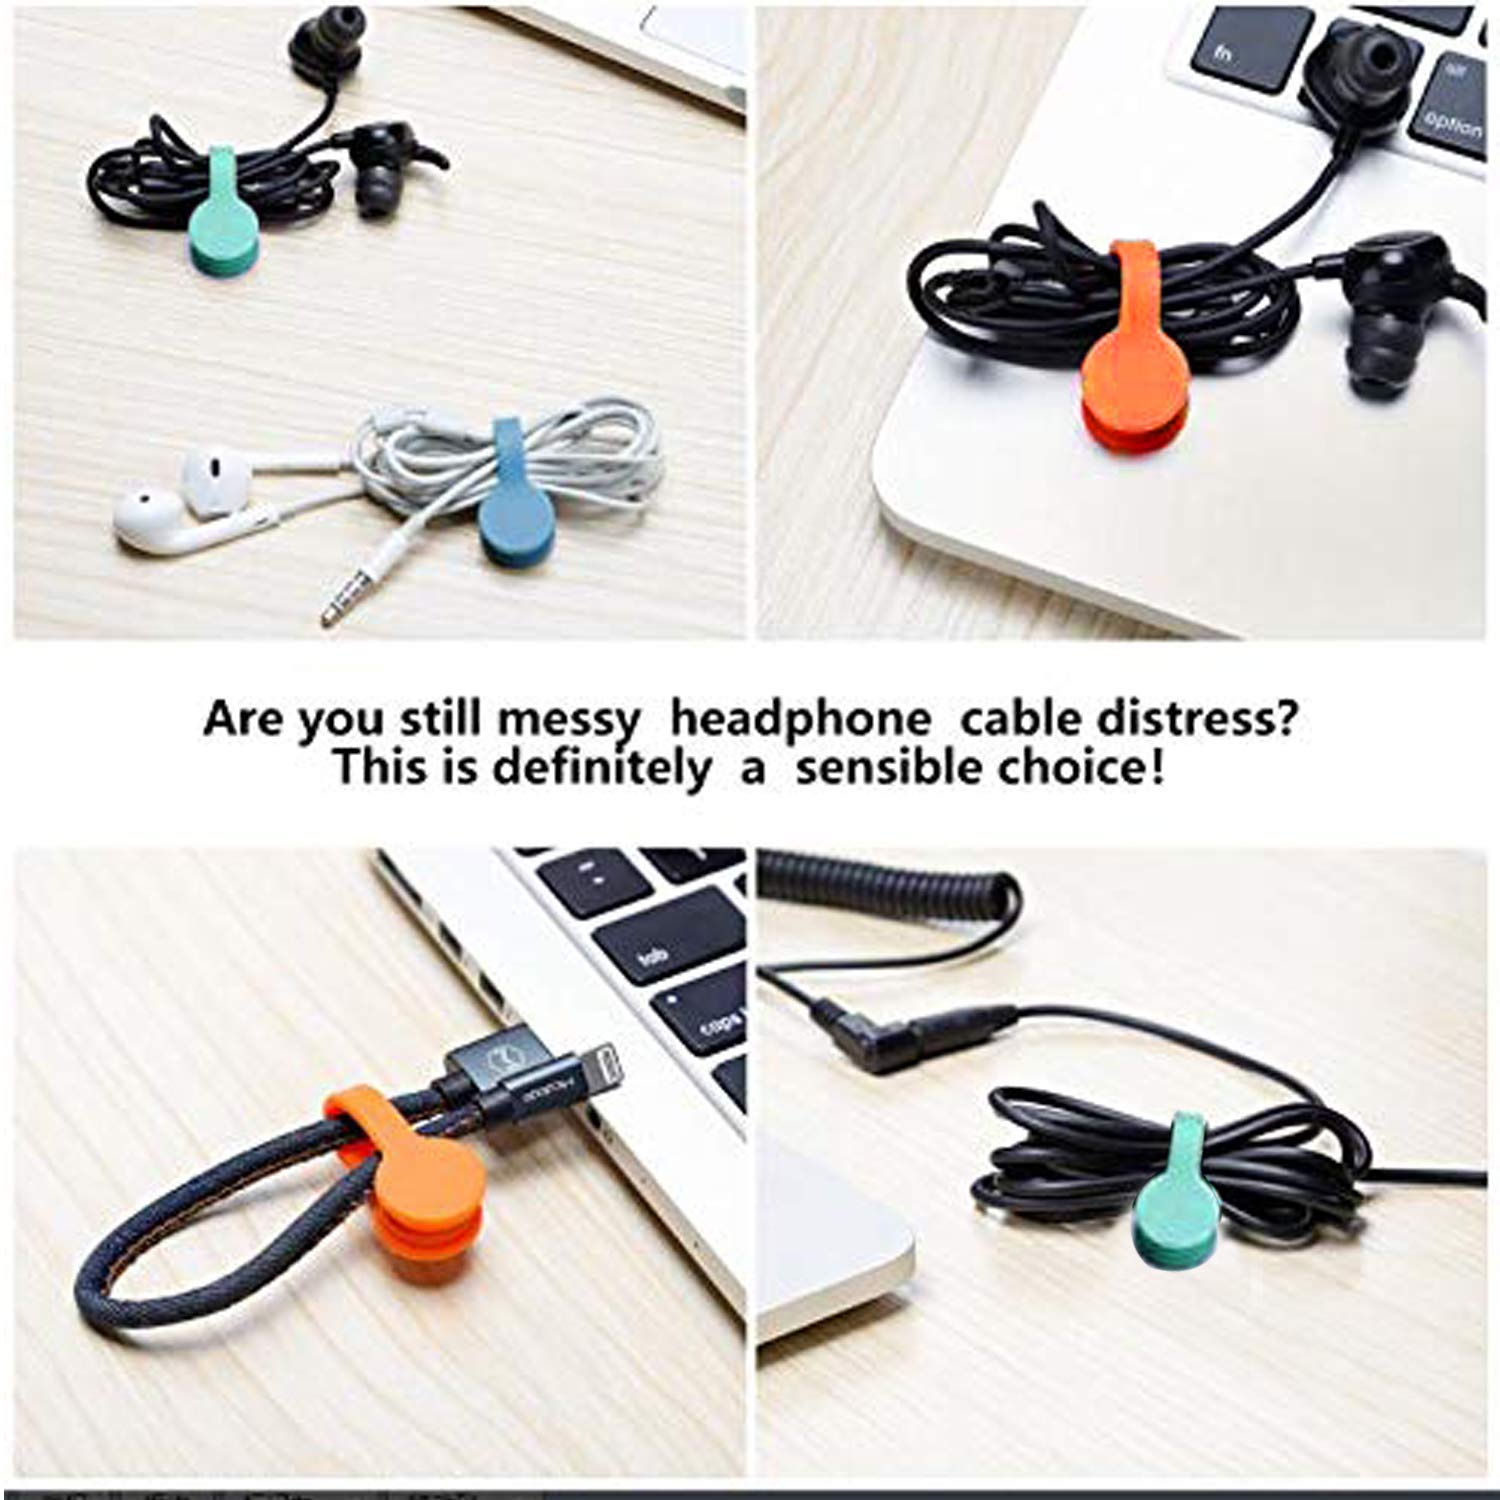 Also Use as Bookmarks//Keychain 8 PCS Magnetic Earphone Winder Aproo Magnetic Cord Winder Wrap for Headphones//Date USB Cable,Soft Silicone Earphone Cable Clips Organizer for iPhone//iPad//Galaxy